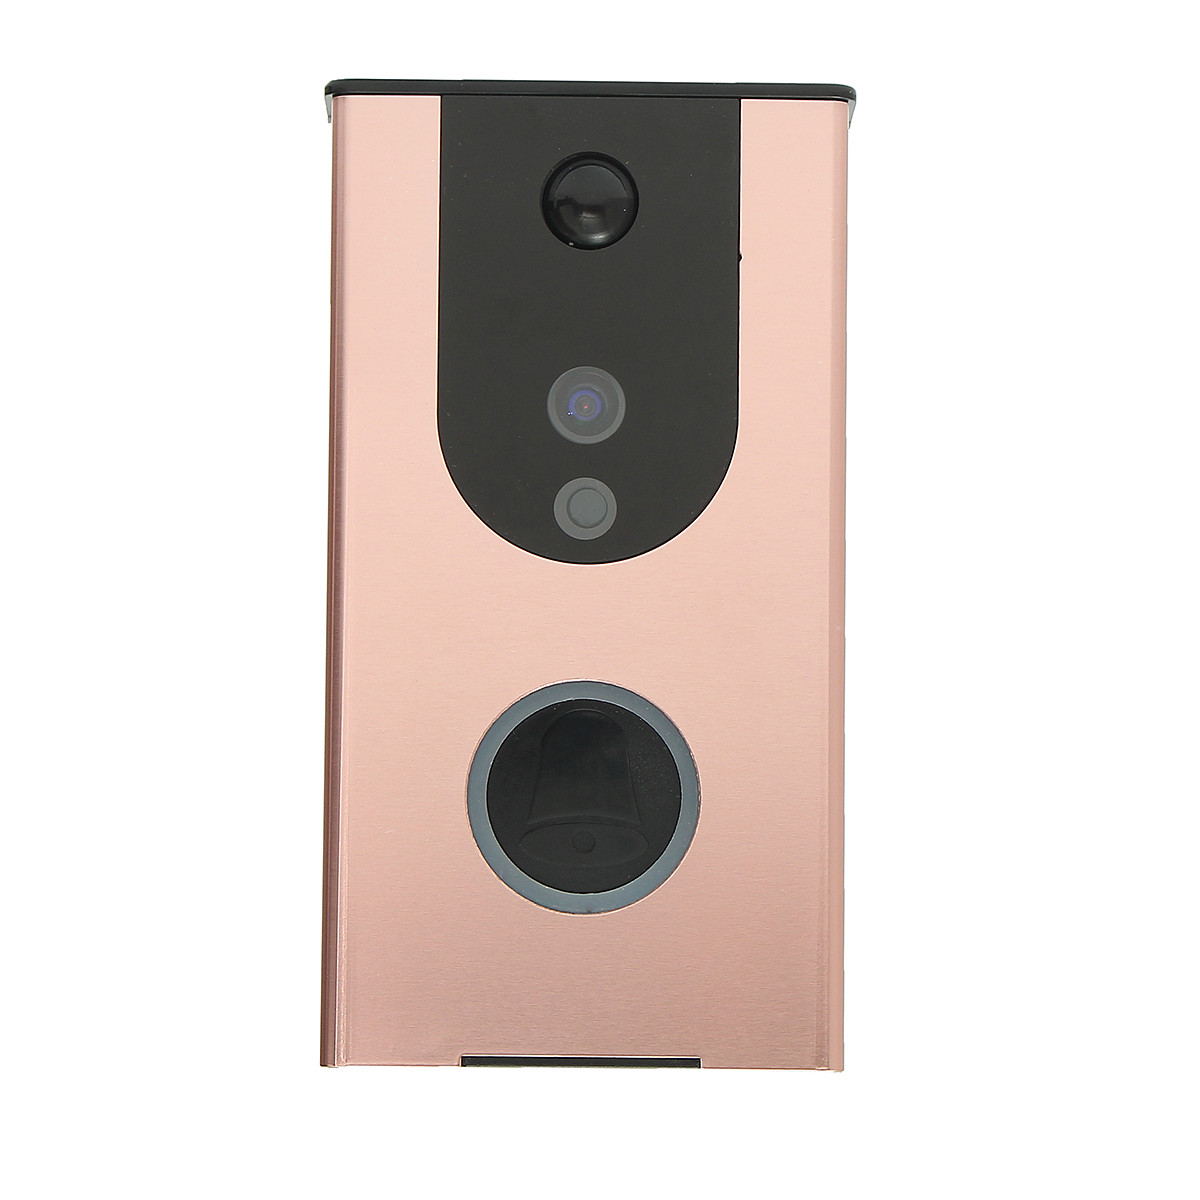 NEW HD 720P Wireless Smart Wifi Remote Video Camera Phone Intercom Door Bell Home Security Safety Night Vision zilnk video intercom hd 720p wifi doorbell camera smart home security night vision wireless doorphone with indoor chime silver